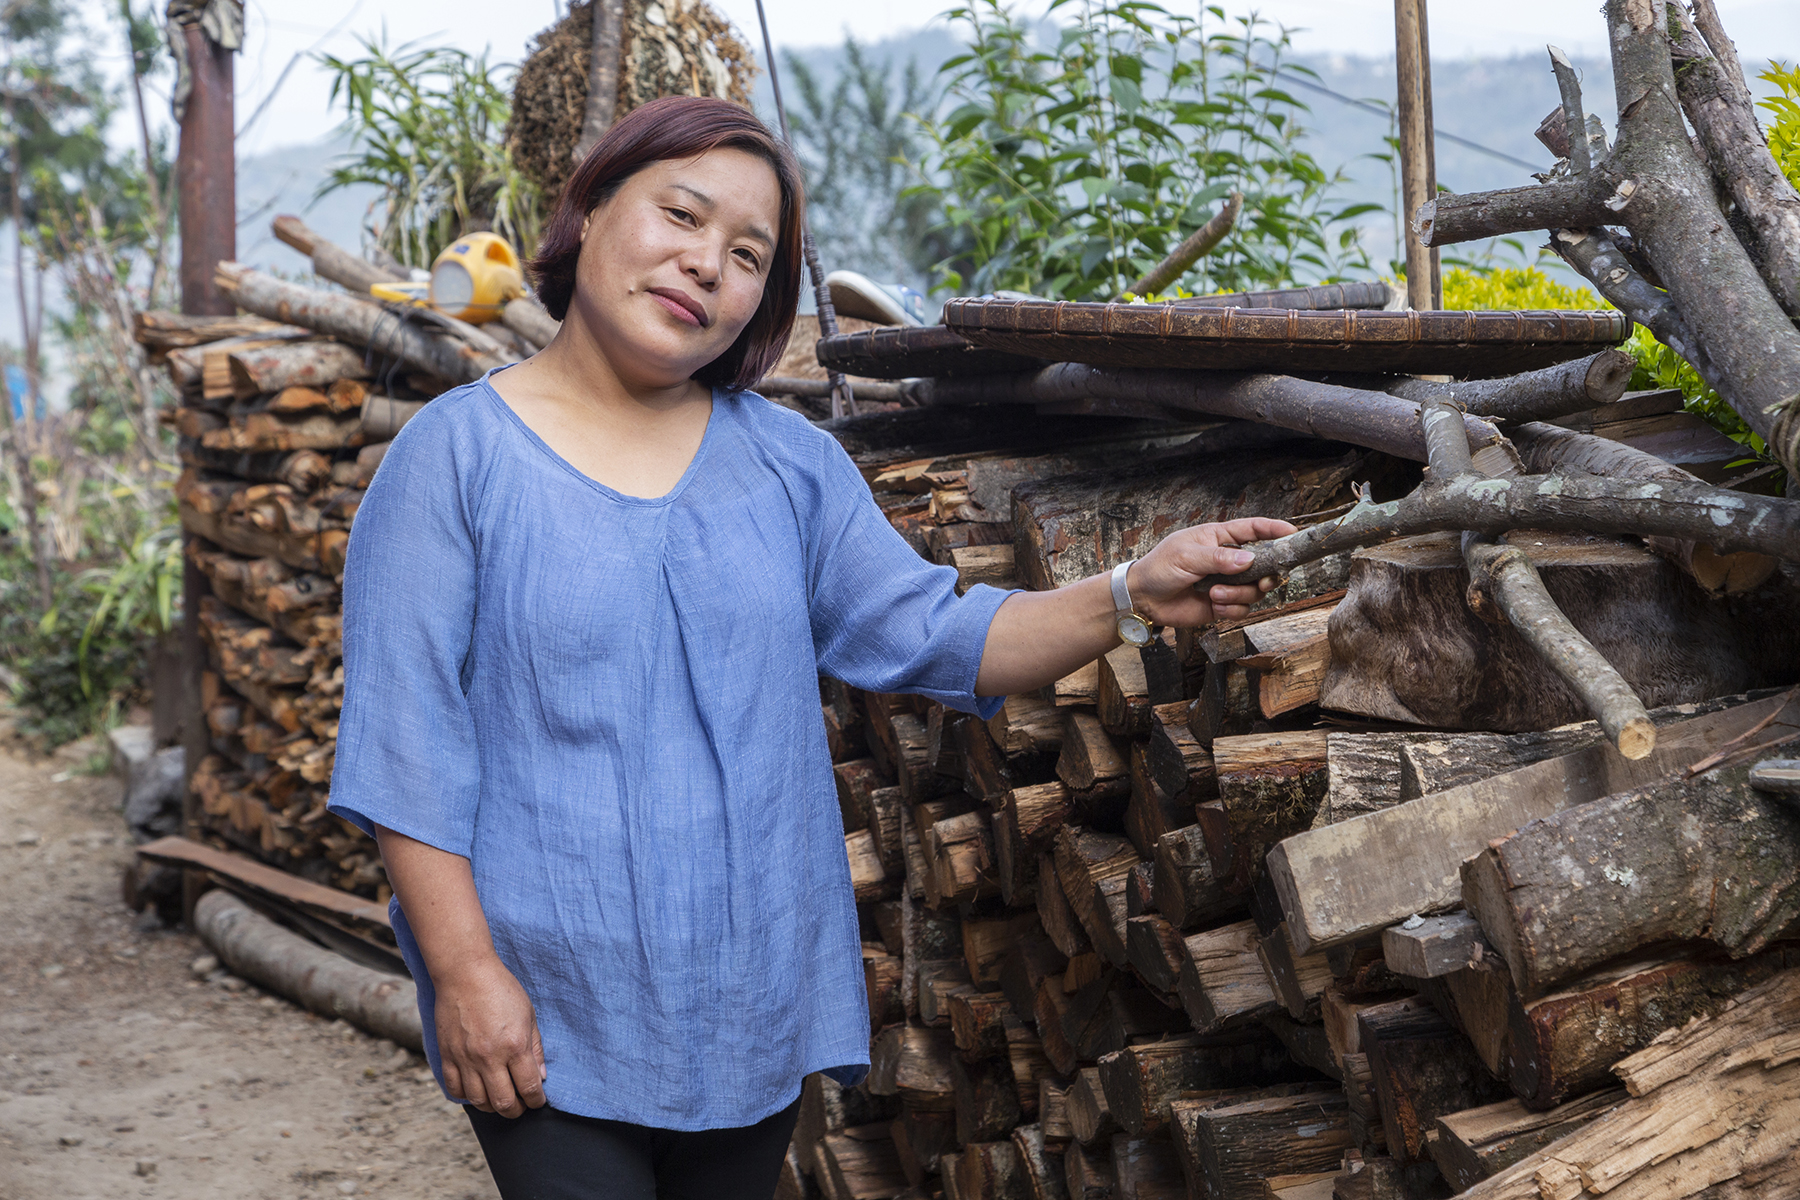 Vikengunu in a sky-blue top with three-quarter sleeves is standing outdoors next to a neatly arranged, shoulder-high pile of chopped branches used as firewood. Her neck is tilted slightly and she has raised one arm, wearing a watch with a silver strap, to touch one of the pieces of firewood.